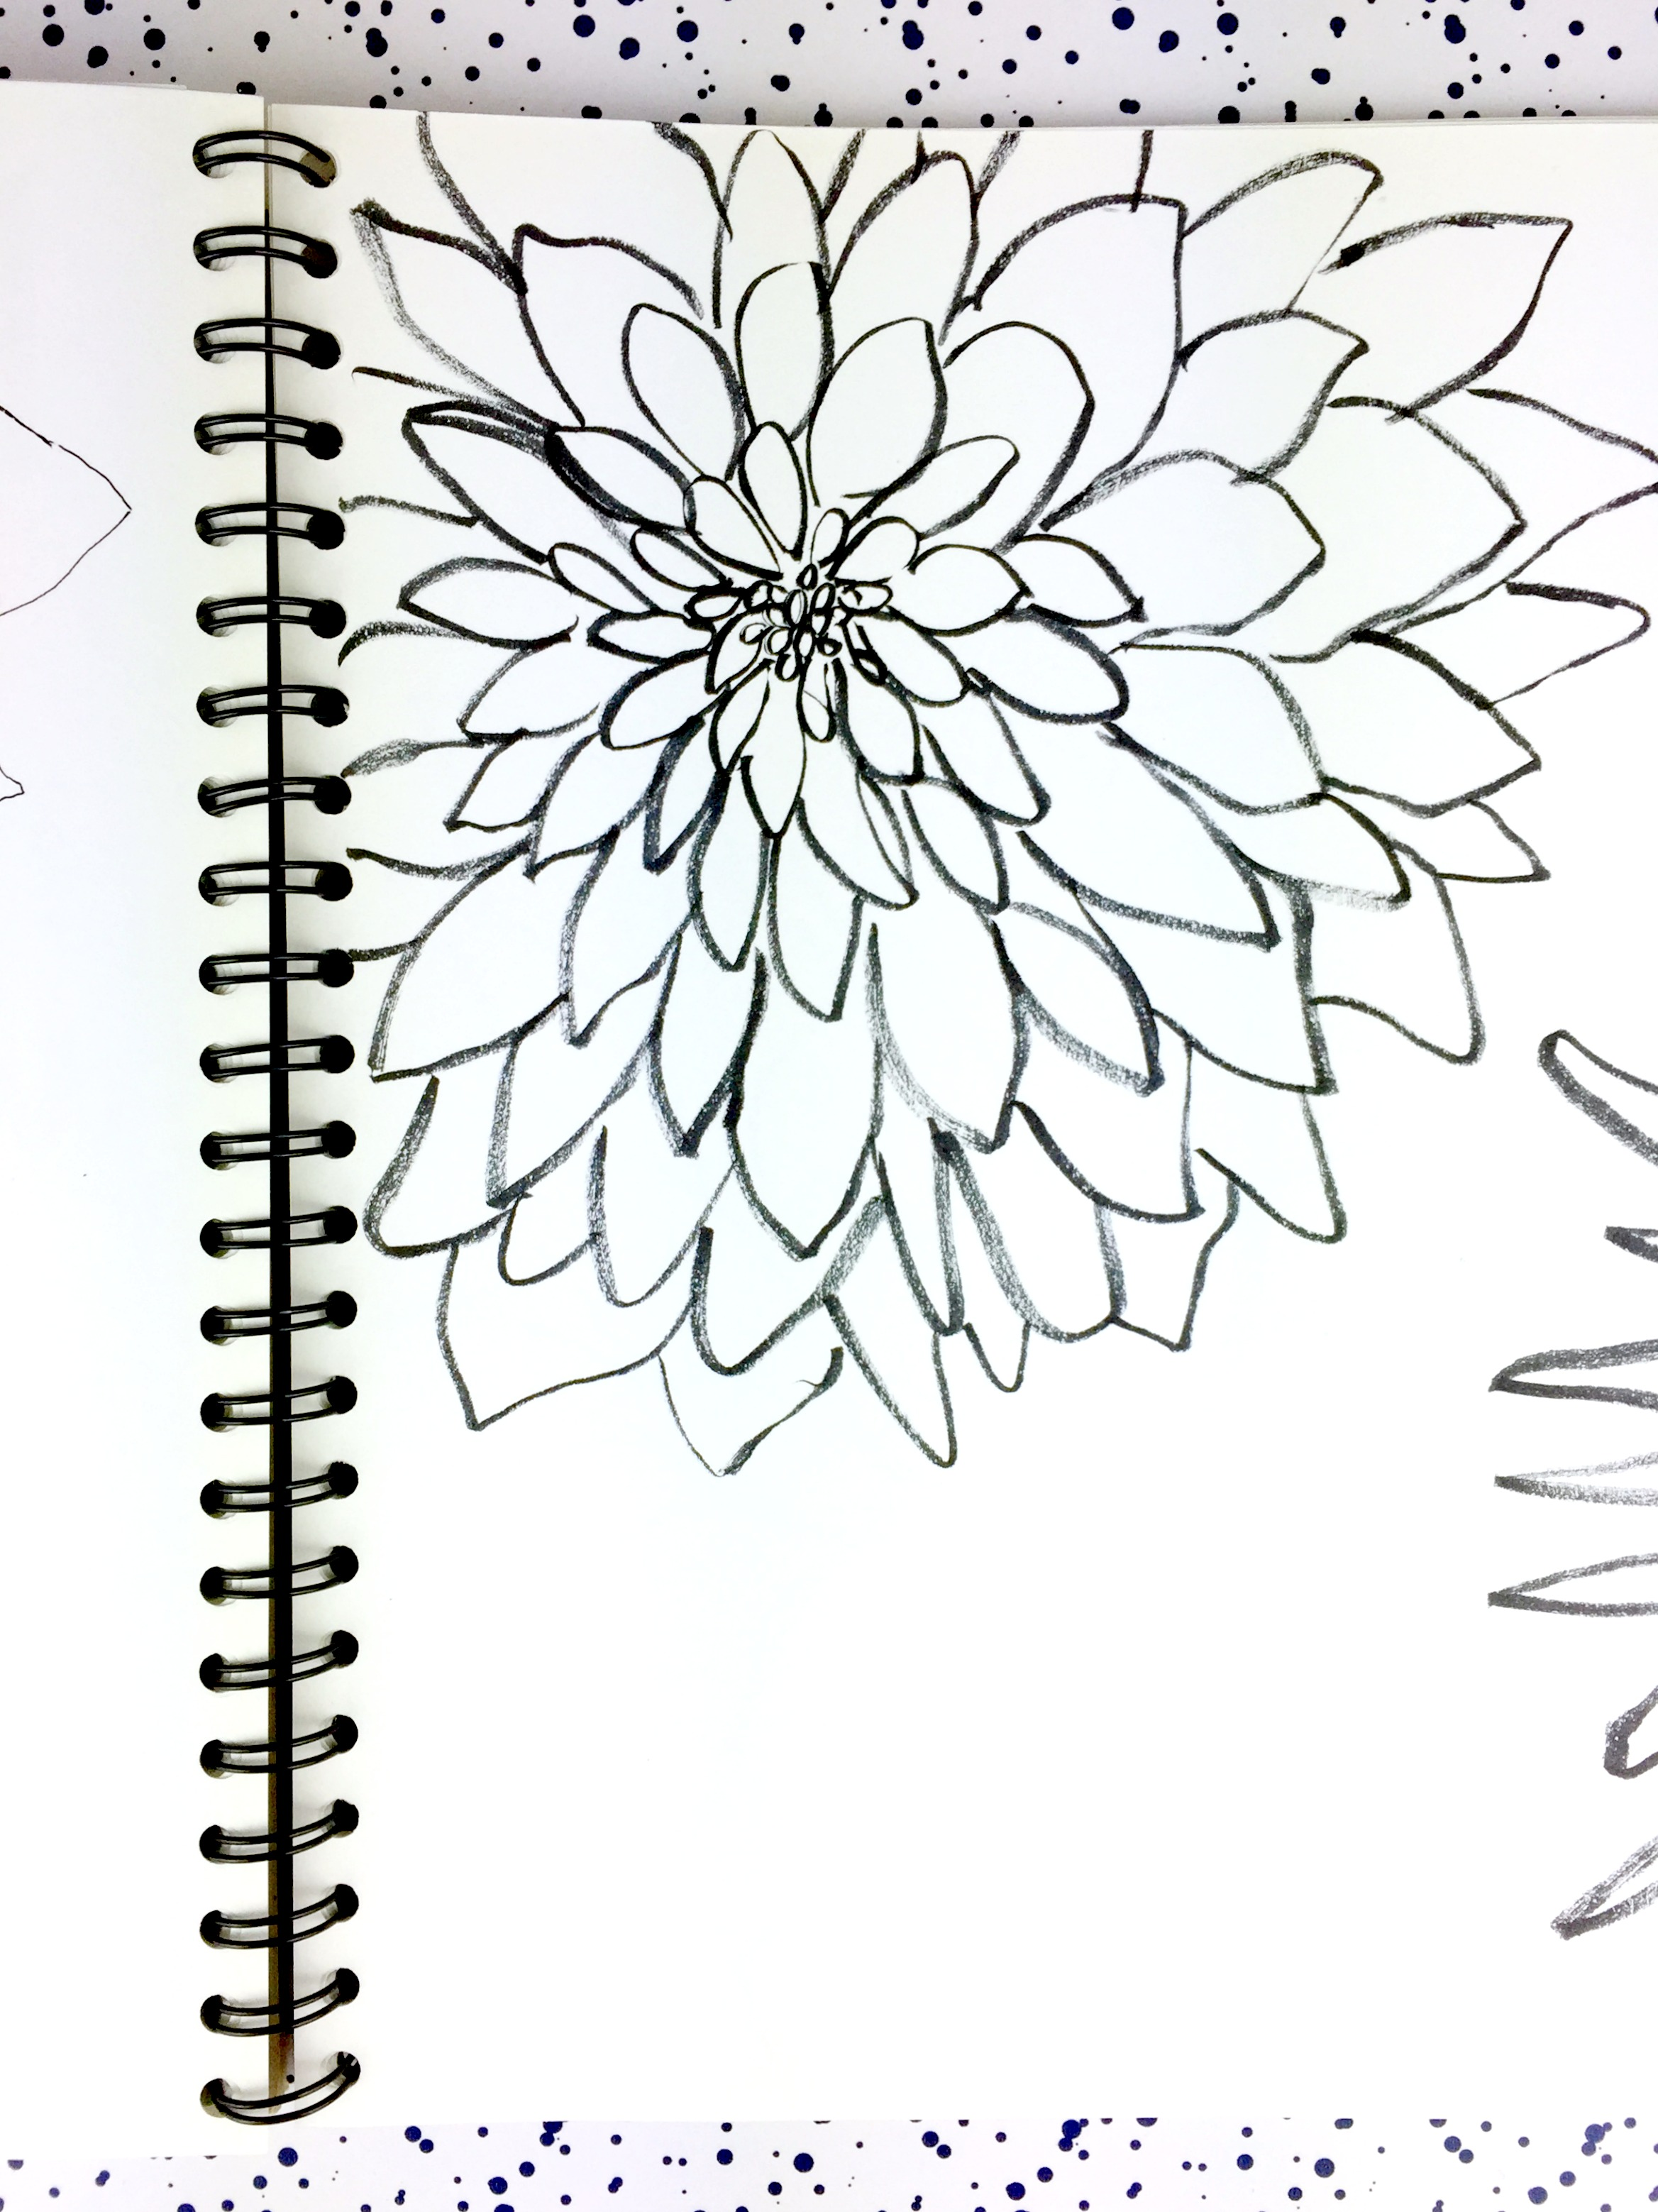 dahlia-ink-drawing-daphnerosa-2